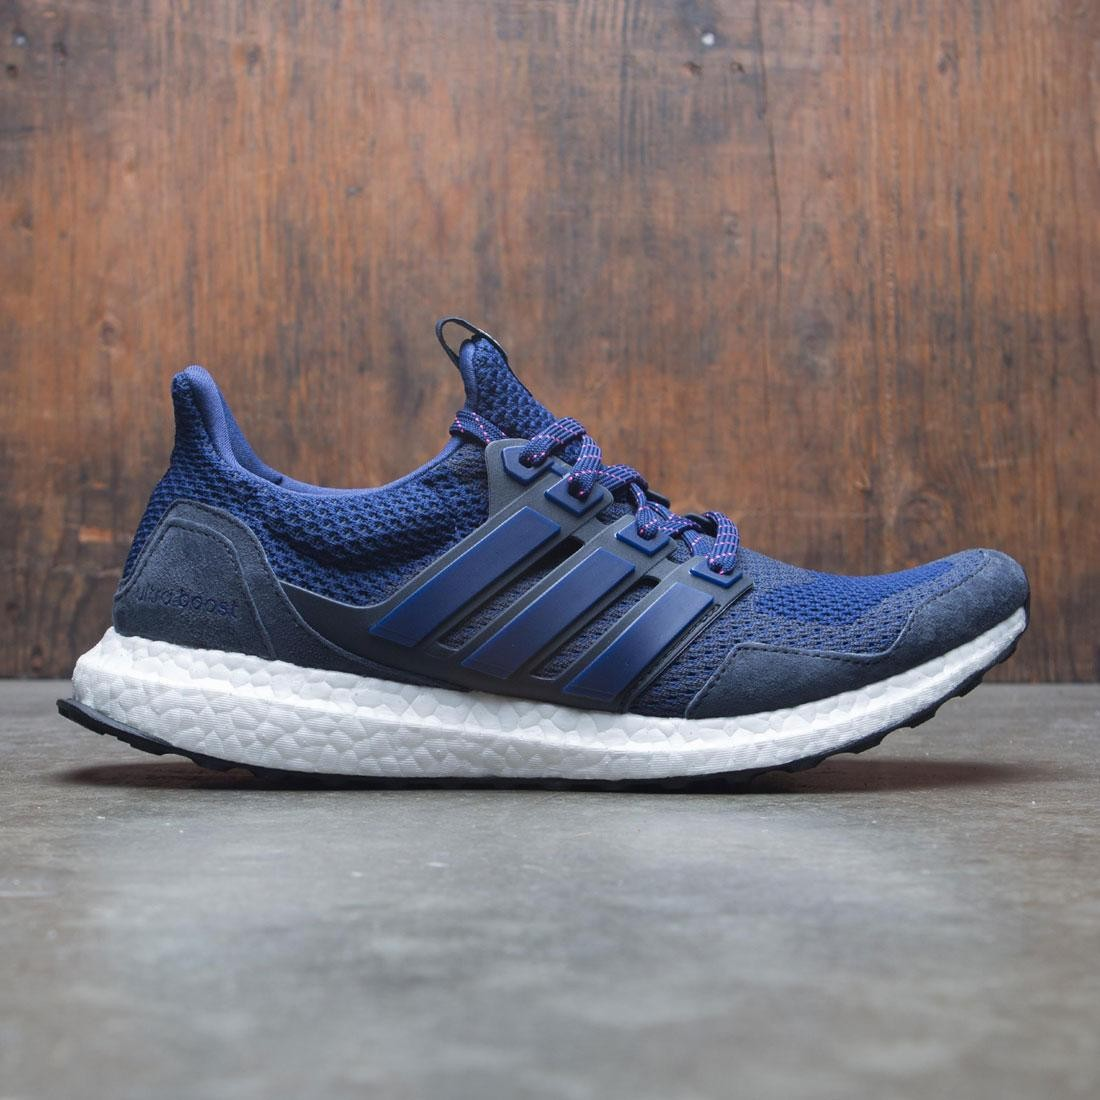 quality design 938ec c3bc9 Adidas Consortium x Kinfolk Men UltraBOOST (navy / night navy / night  indigo / dark blue)